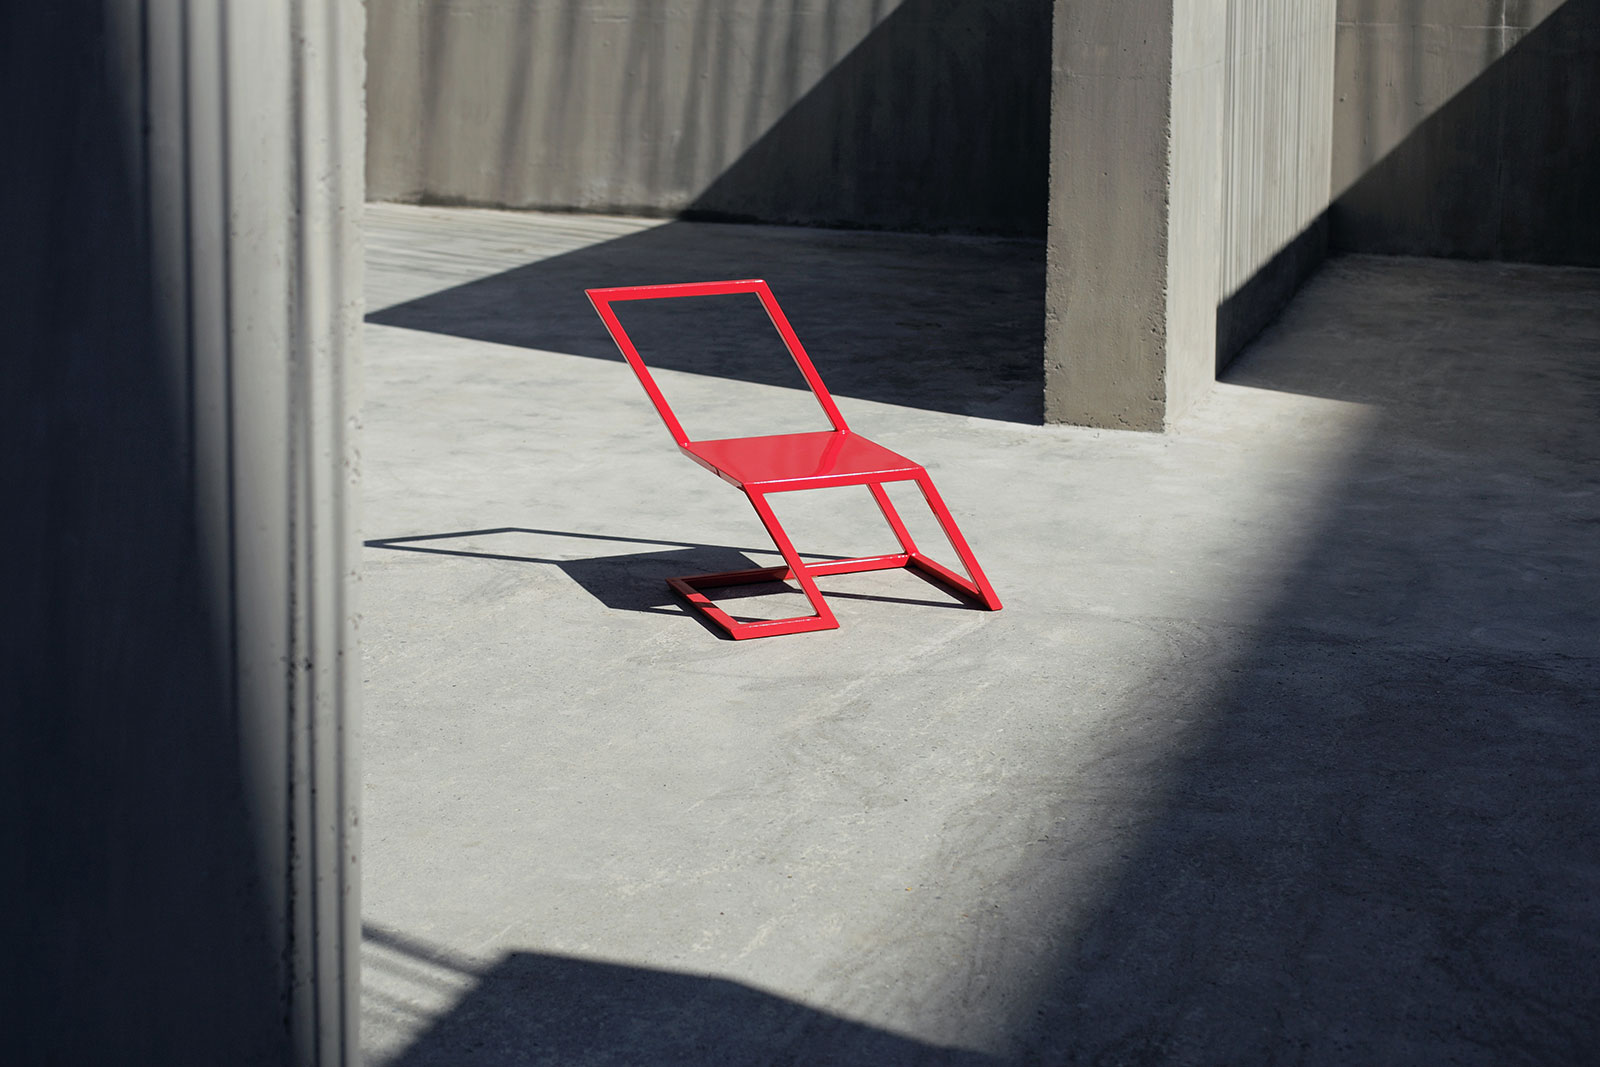 leaning-furniture-collection-by-xyz-integrated-architecture-6